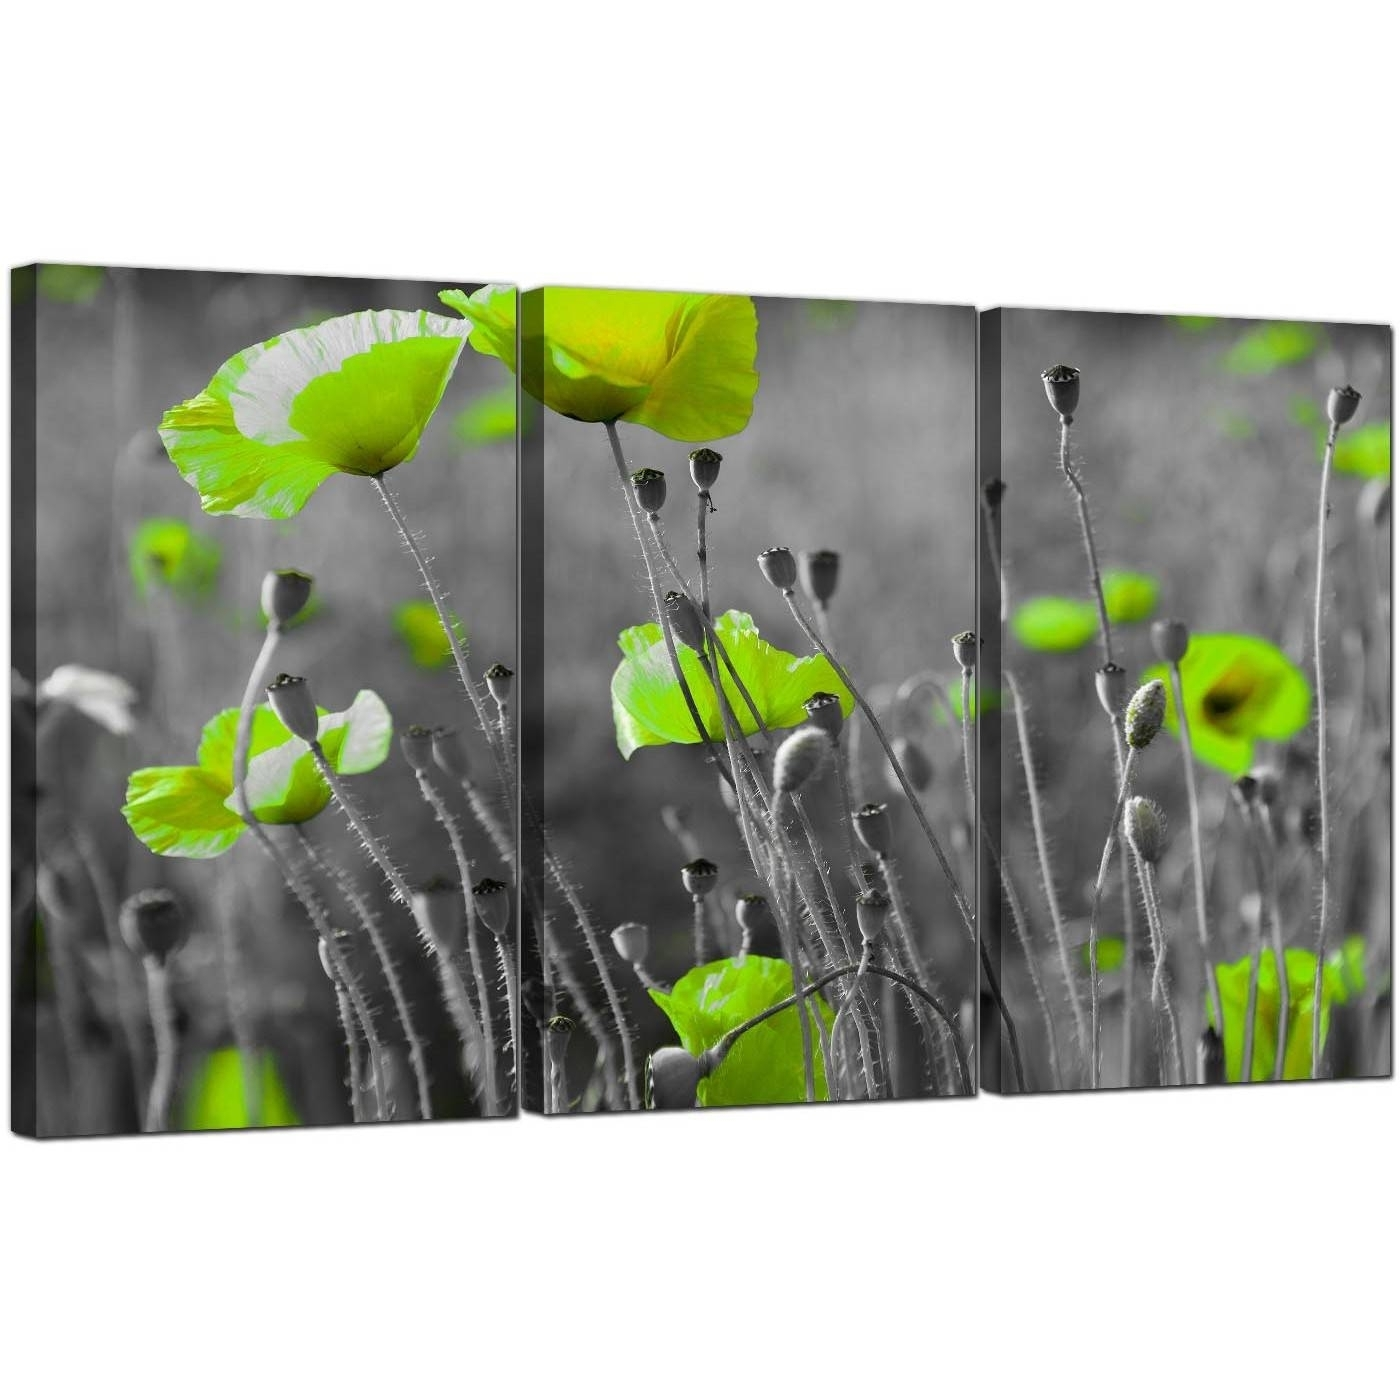 2018 Popular Lime Green Wall Art Regarding 2017 Lime Green Abstract Wall Art (View 1 of 20)